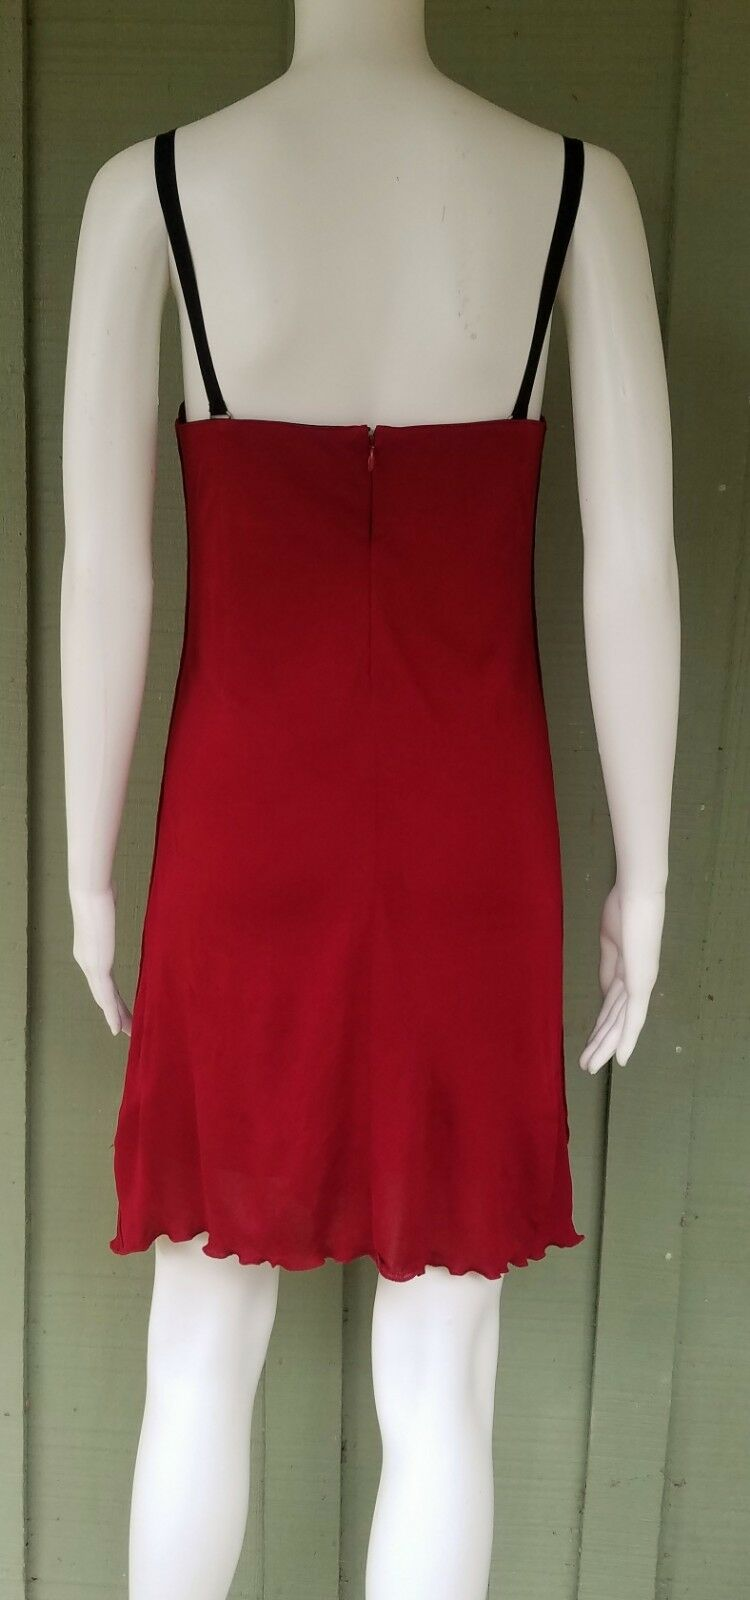 NWT  795 795 795 JERSEY by COSTUME NATIONAL Red Dress 42 8 2adf6d